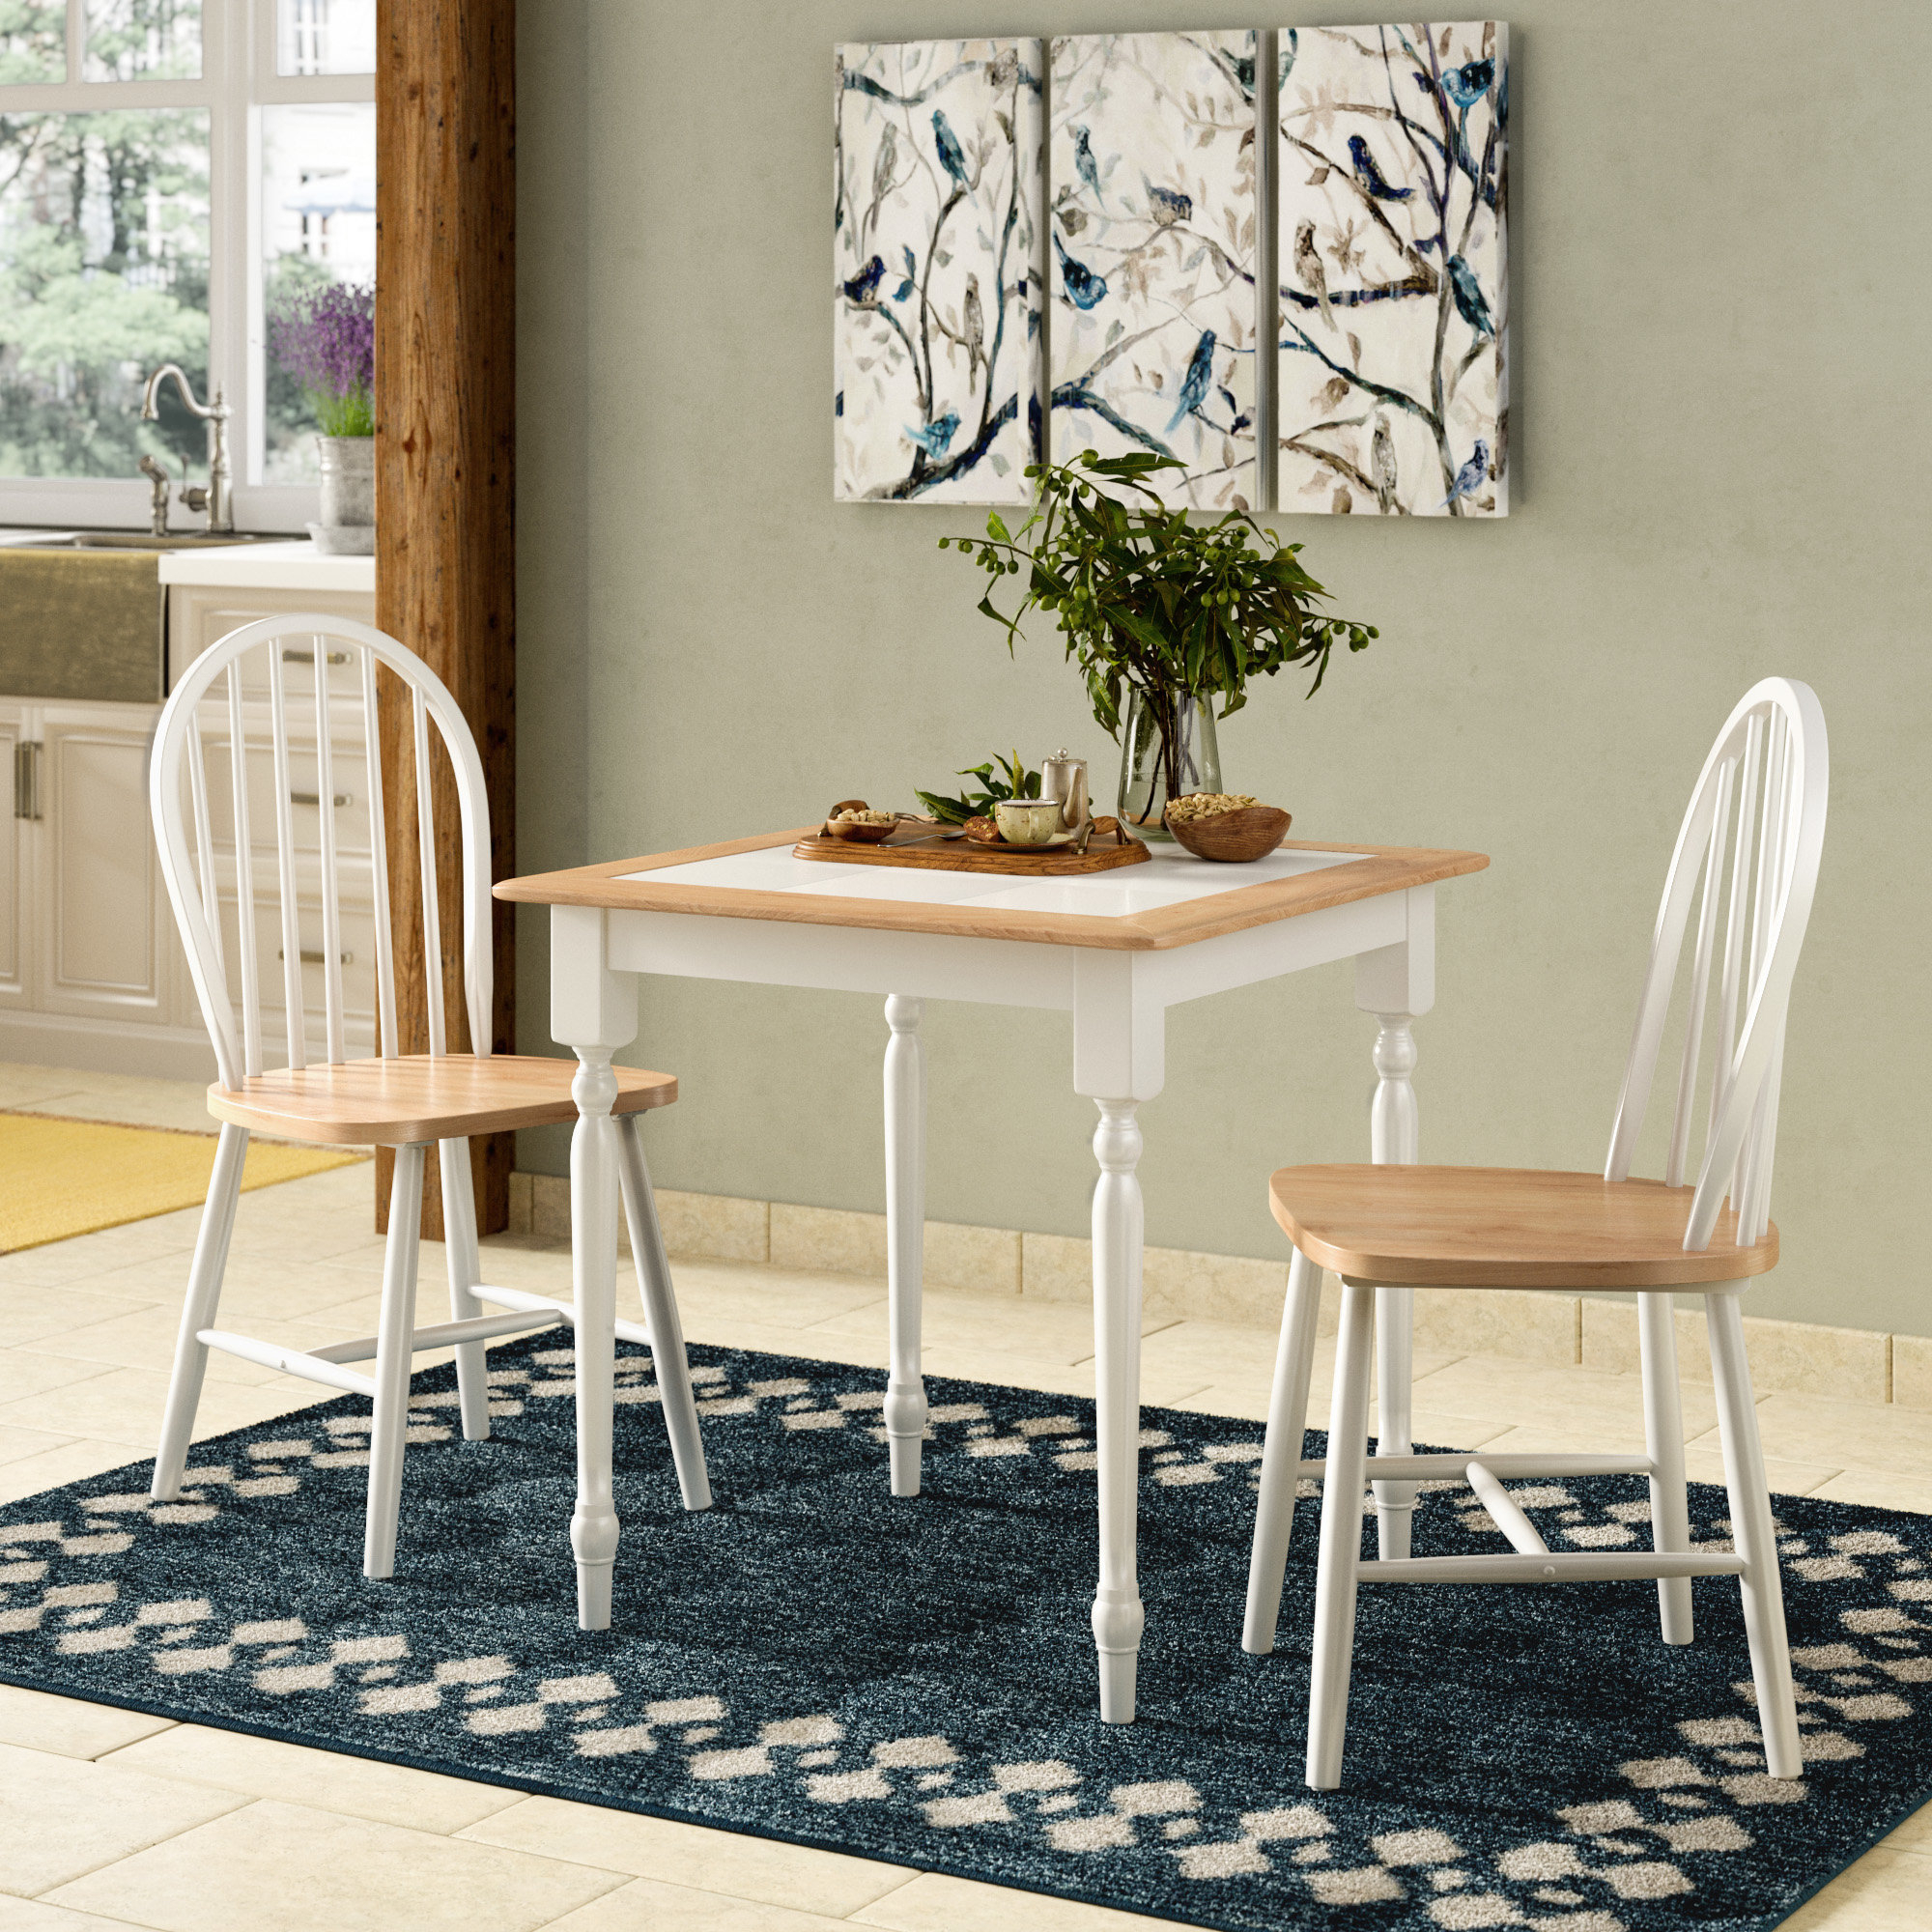 Widely Used Kinsler 3 Piece Bistro Sets Within Llanas 3 Piece Dining Set (View 20 of 20)